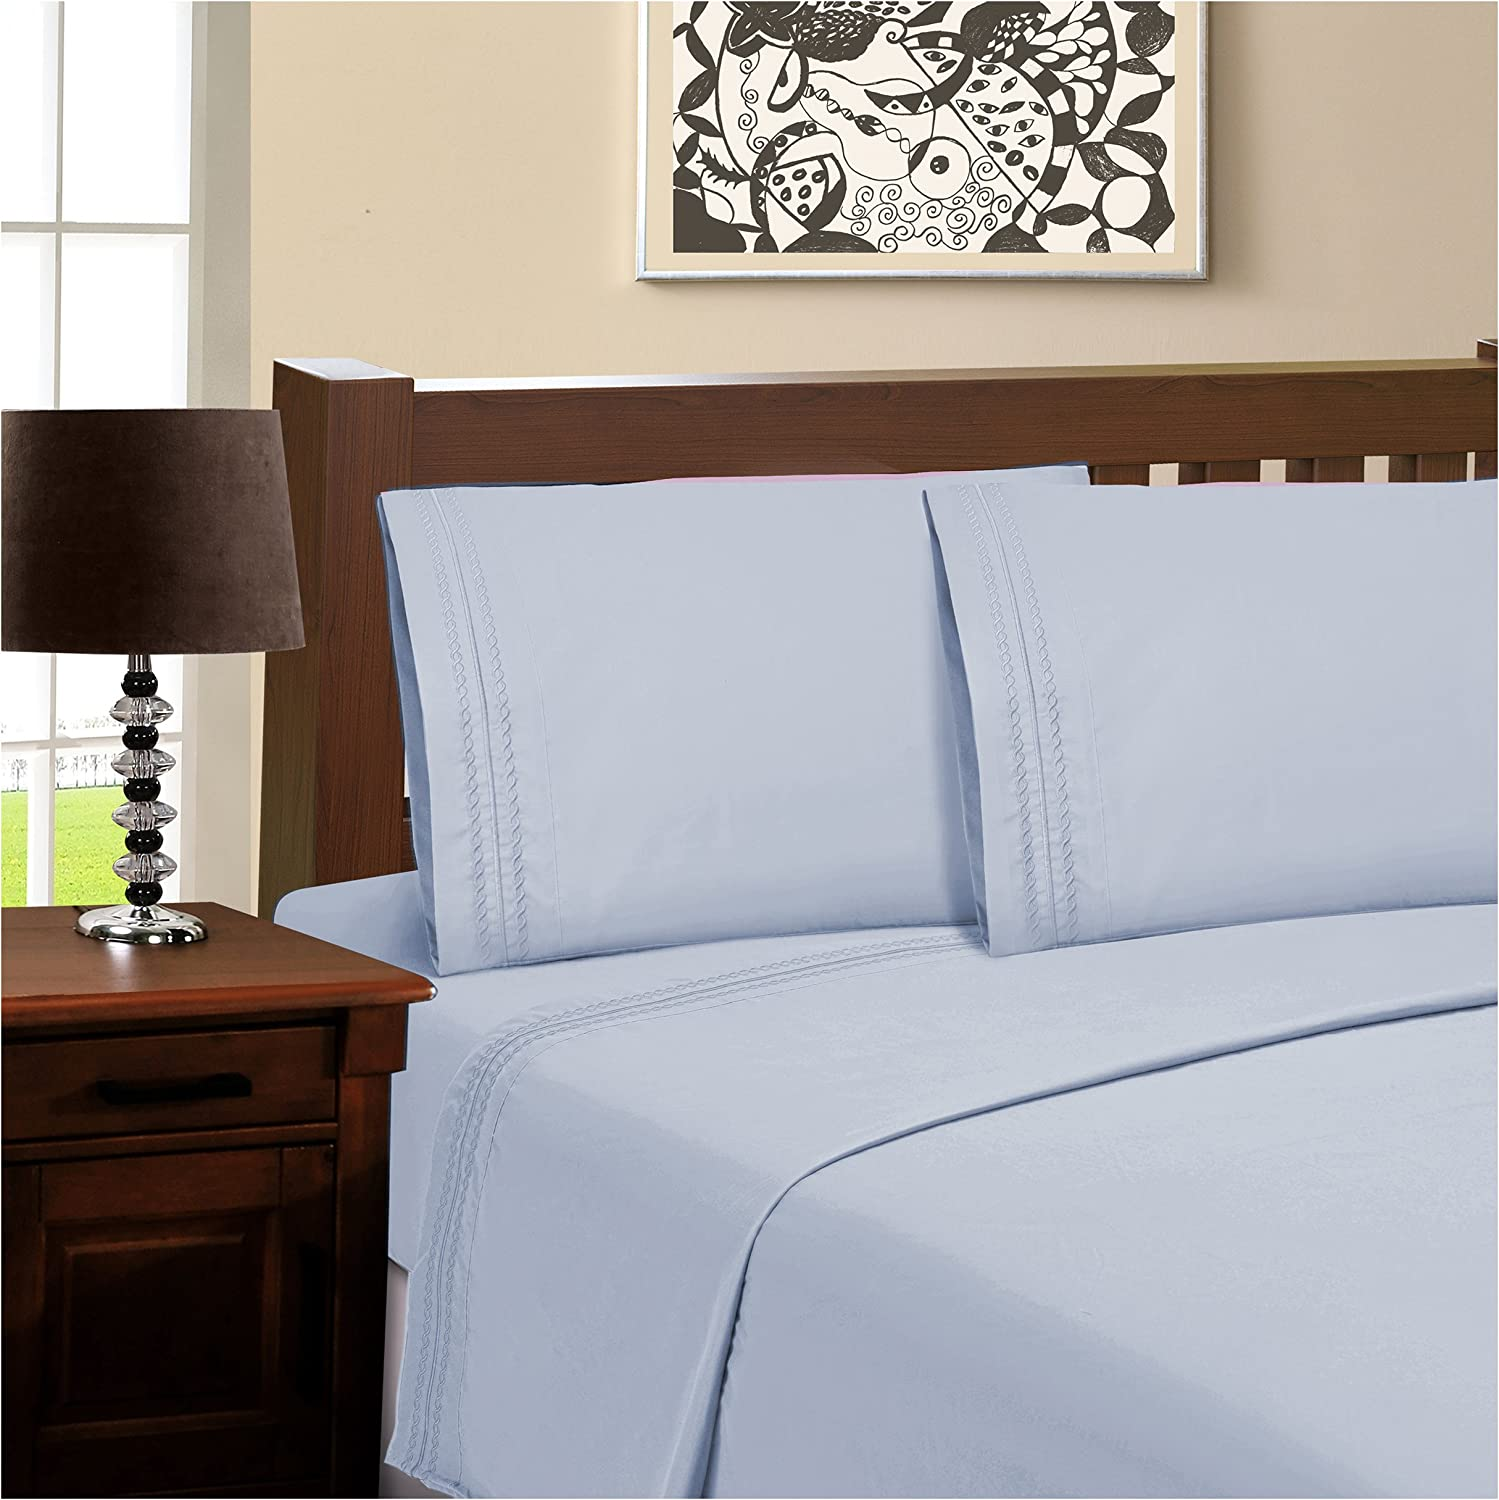 SUPERIOR 100% Brushed Microfiber Wrinkle Resistant Full Sheet Set, 4-Piece, Light Blue